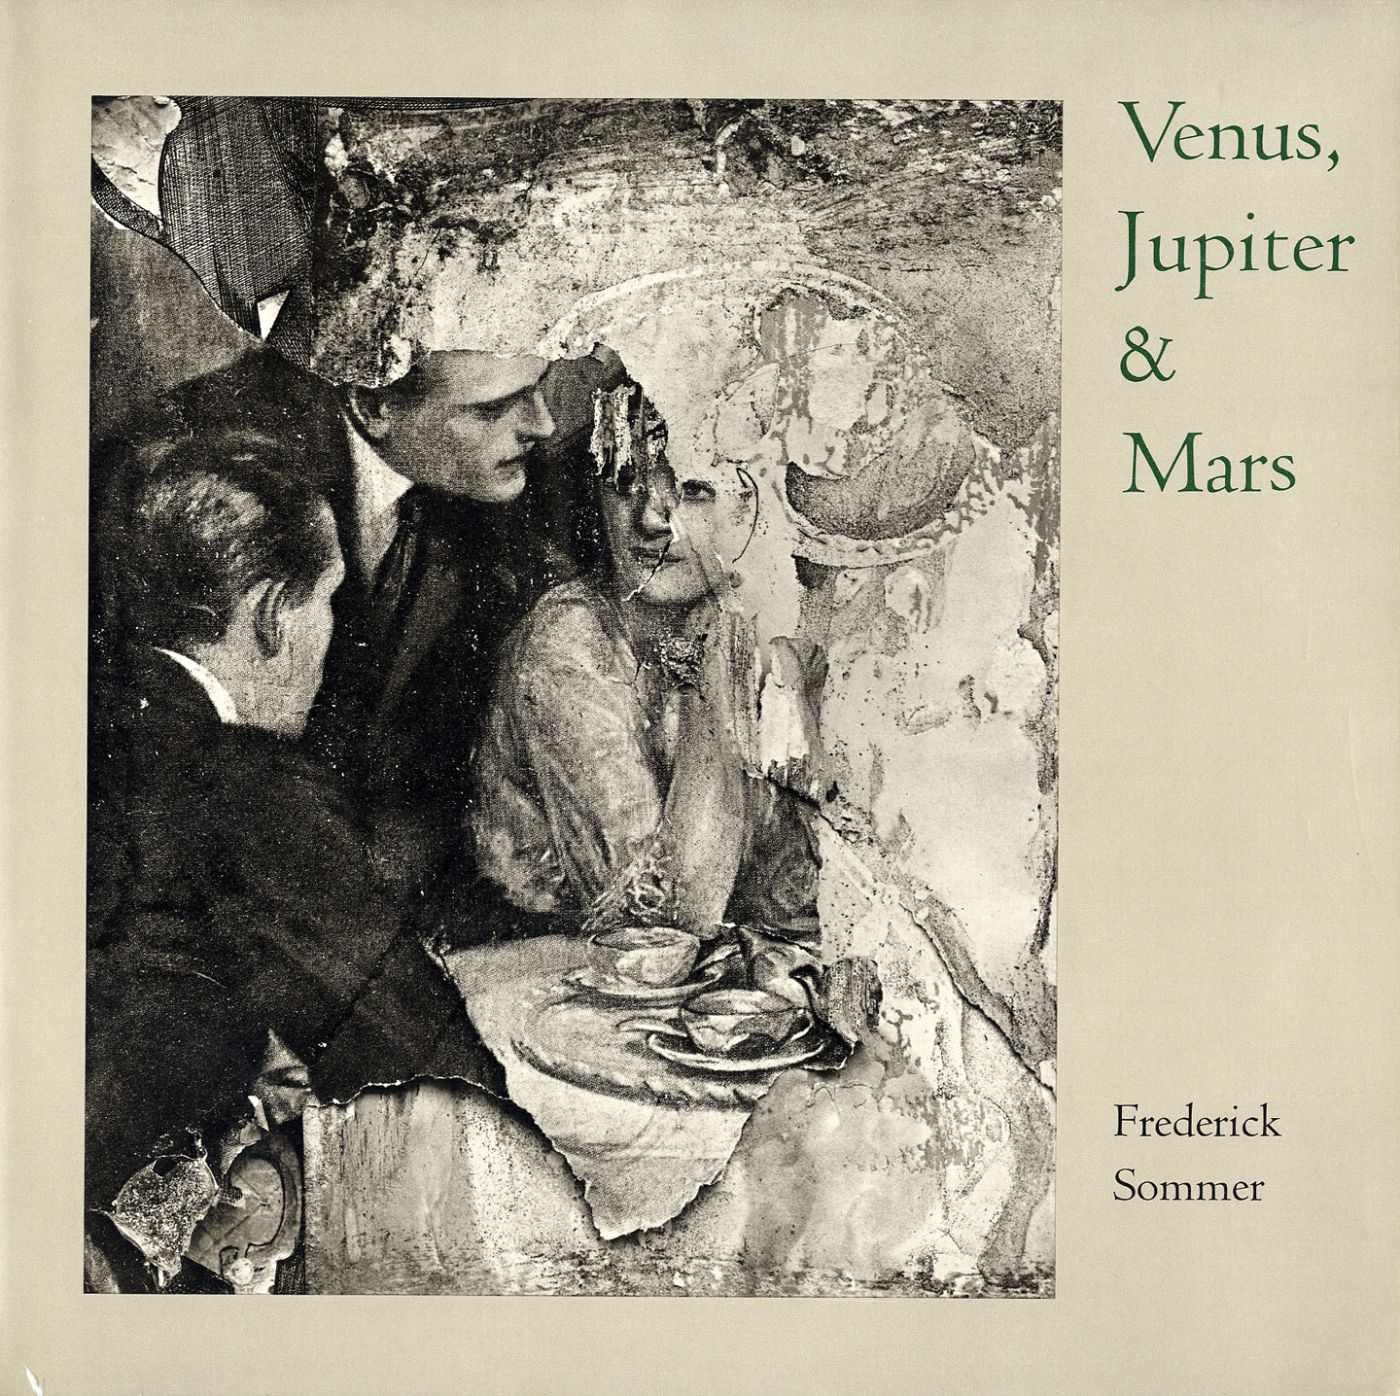 Venus, Jupiter & Mars: The Photographs of Frederick Sommer